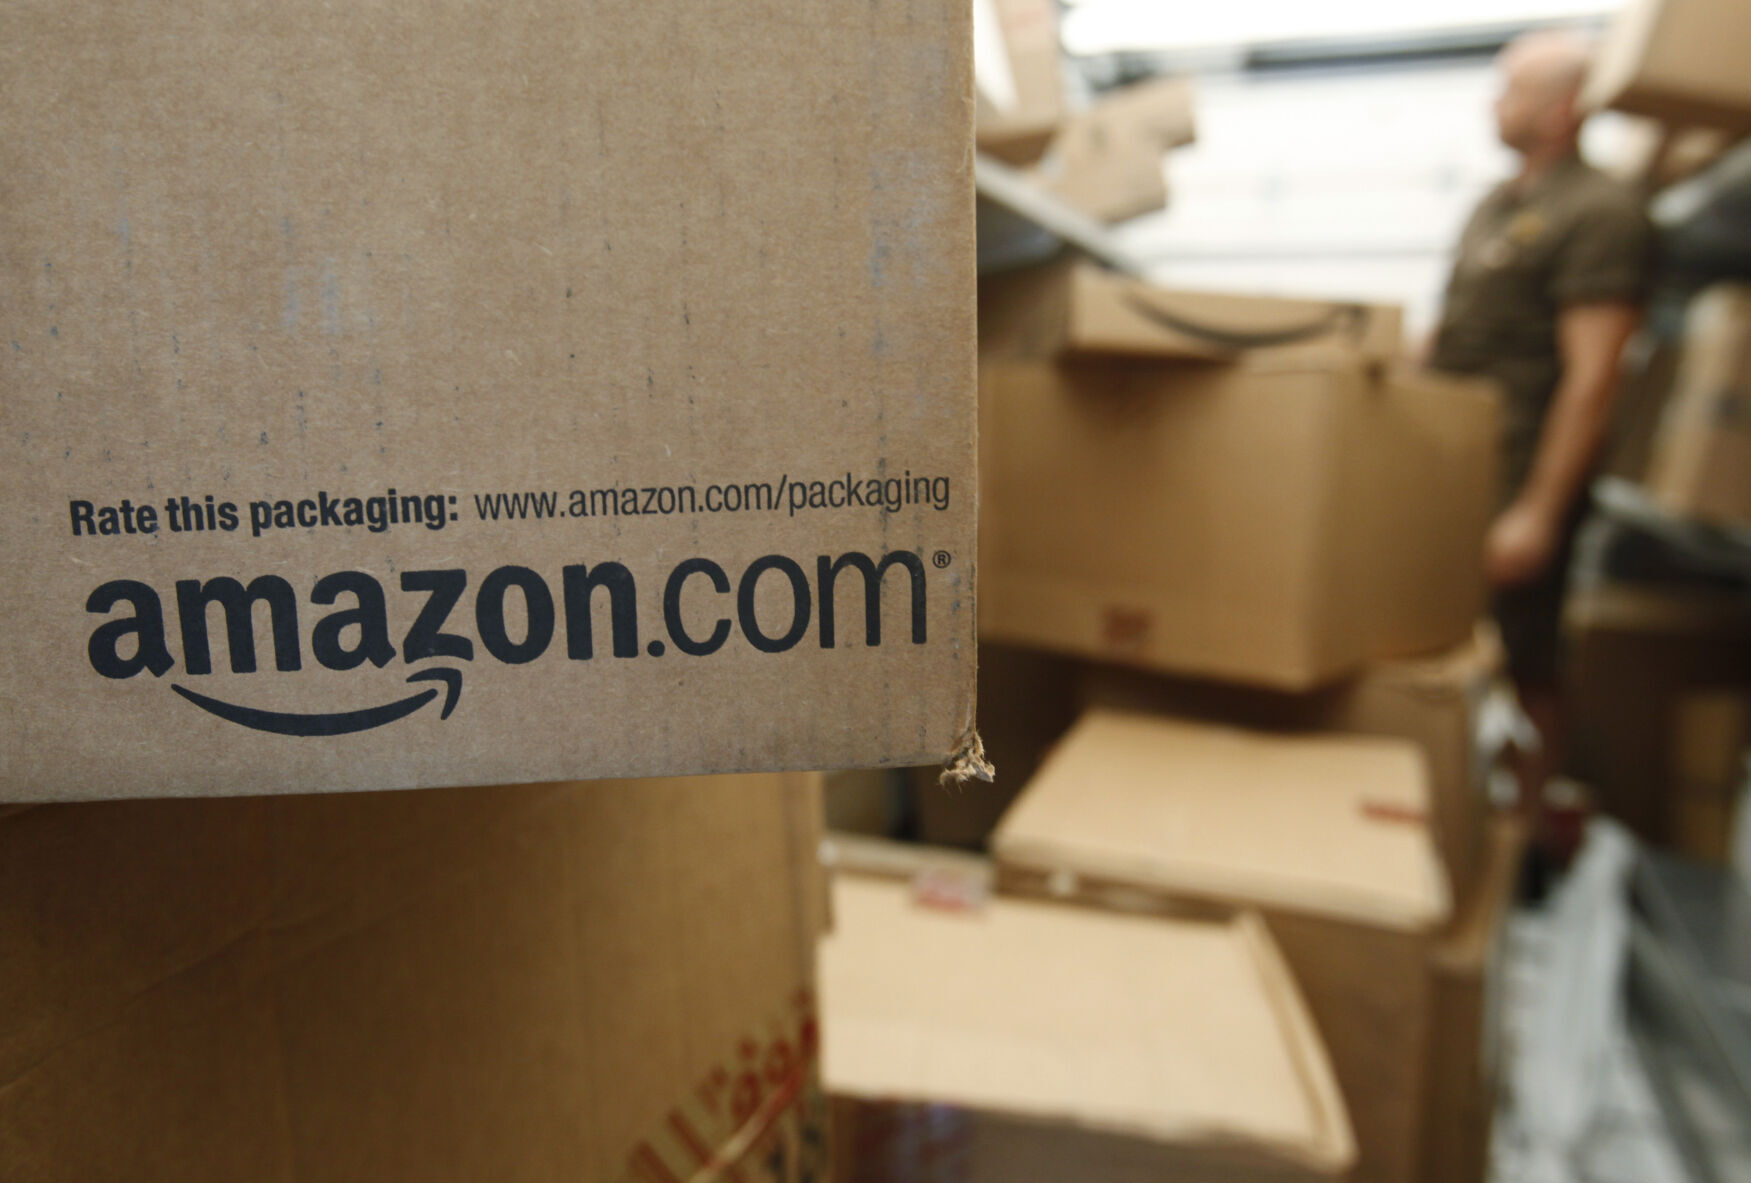 <p>In this Oct. 18, 2010 photo, an Amazon.com package awaits delivery from UPS in Palo Alto, Calif. (AP Photo/Paul Sakuma)</p>